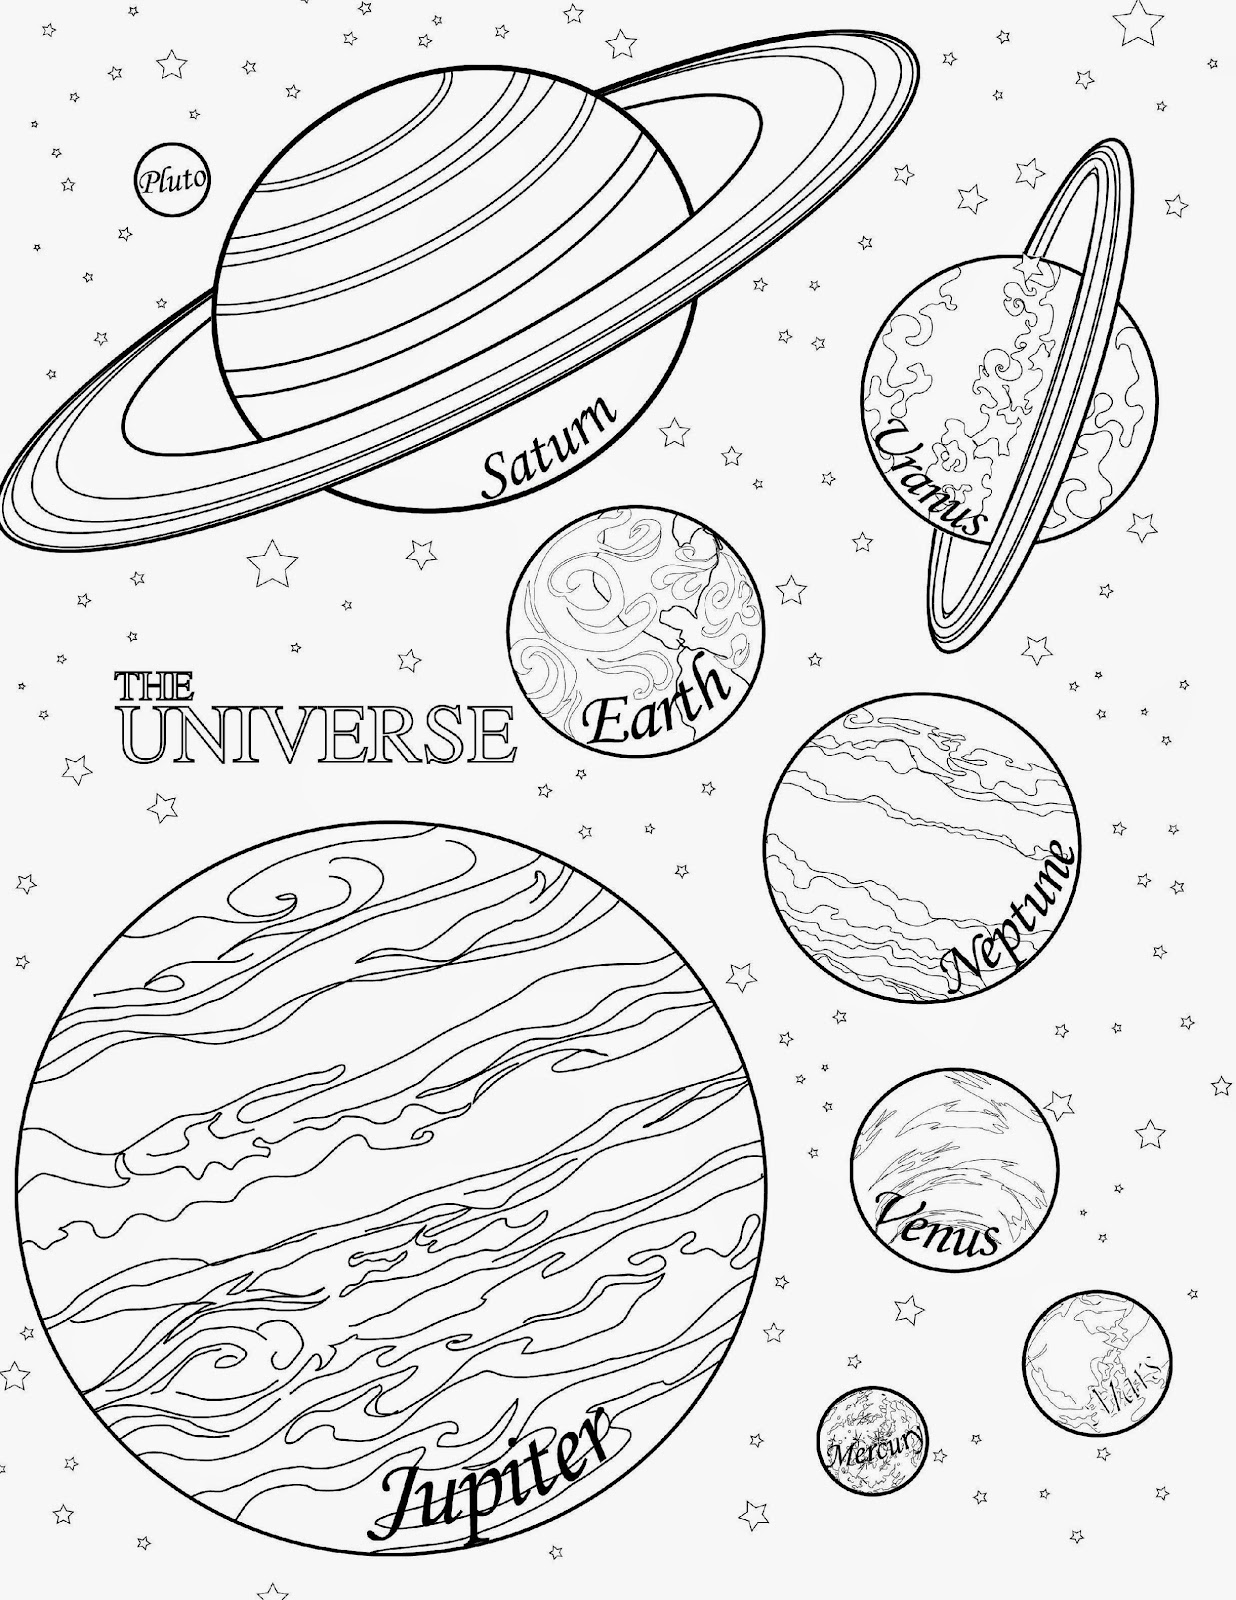 Venus Planet Coloring Pages Printable Sketch Coloring Page